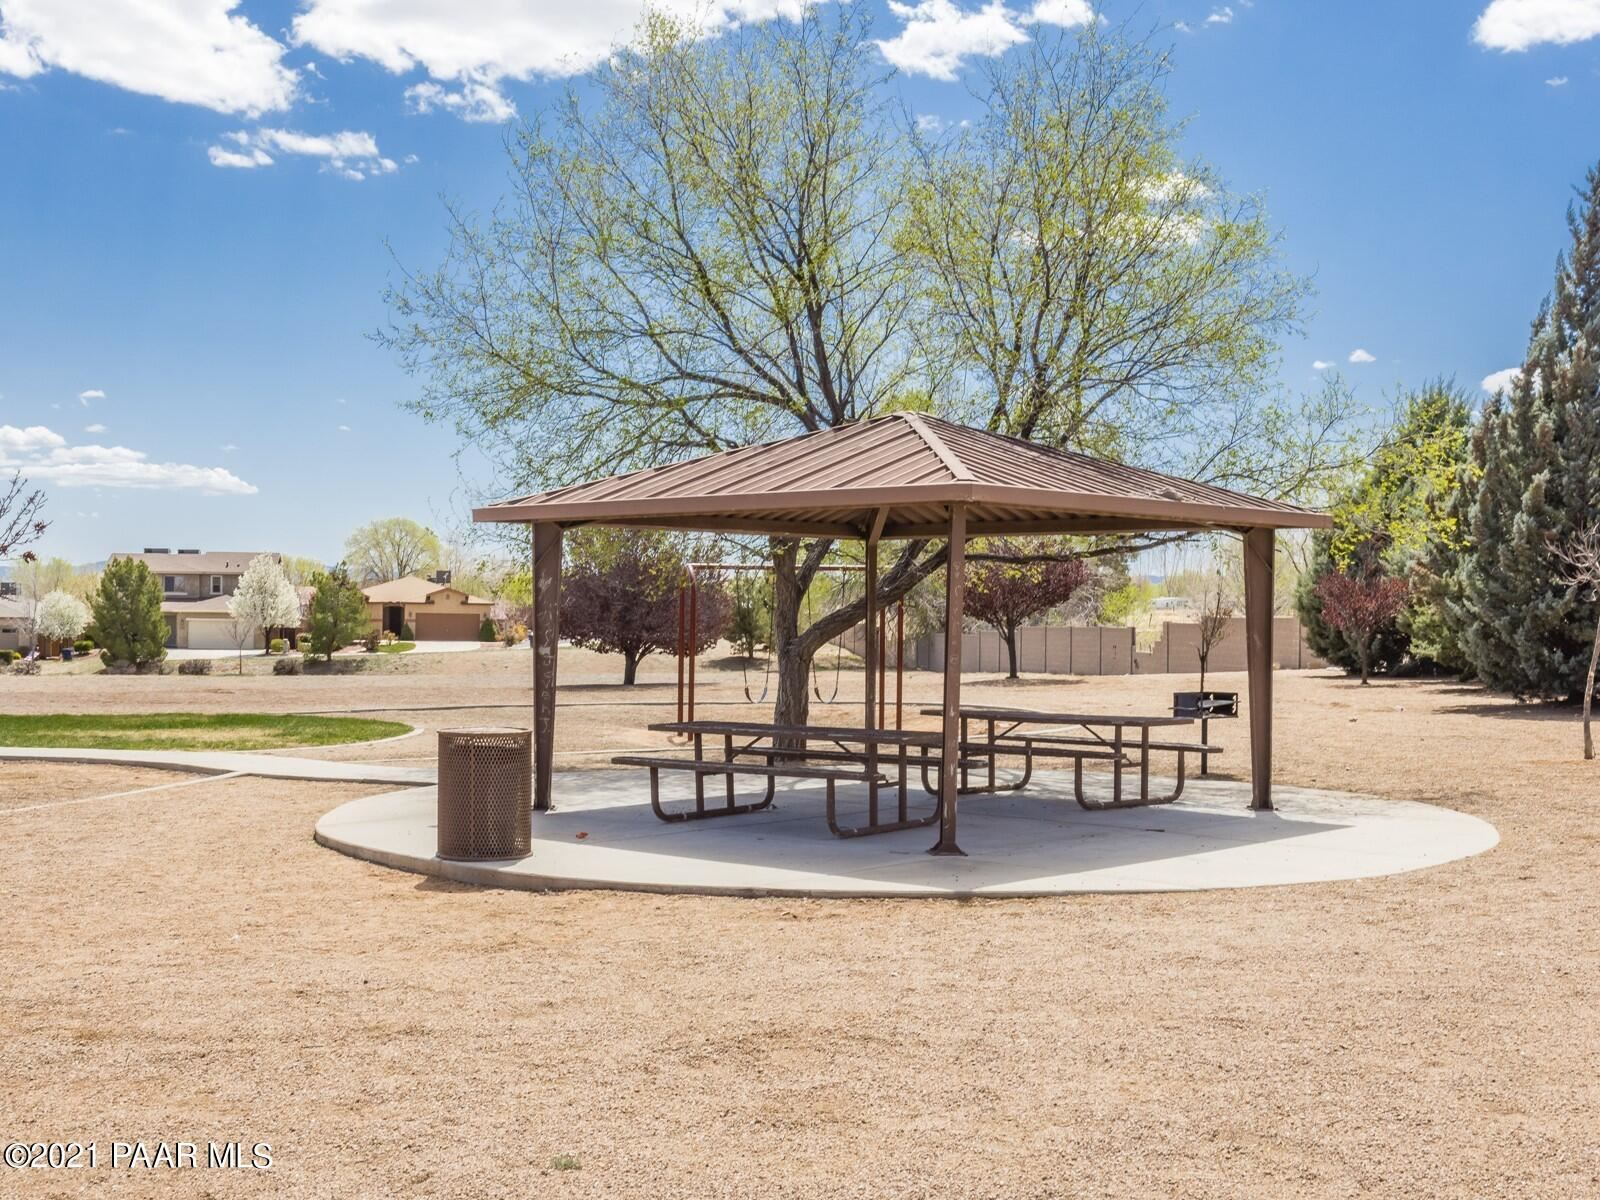 Photo of 1377 Bannon Place #Lot: 77, Chino Valley, AZ 86323 (MLS # 1037657)